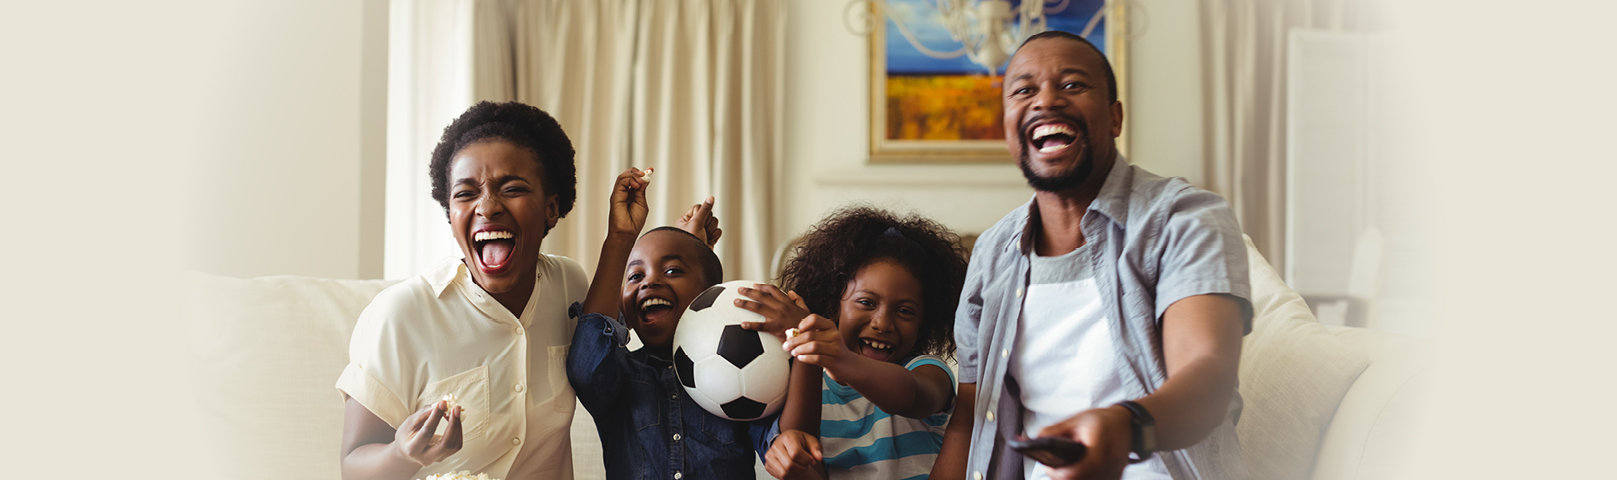 a family enjoying tv together despite differing levels of hearing ability